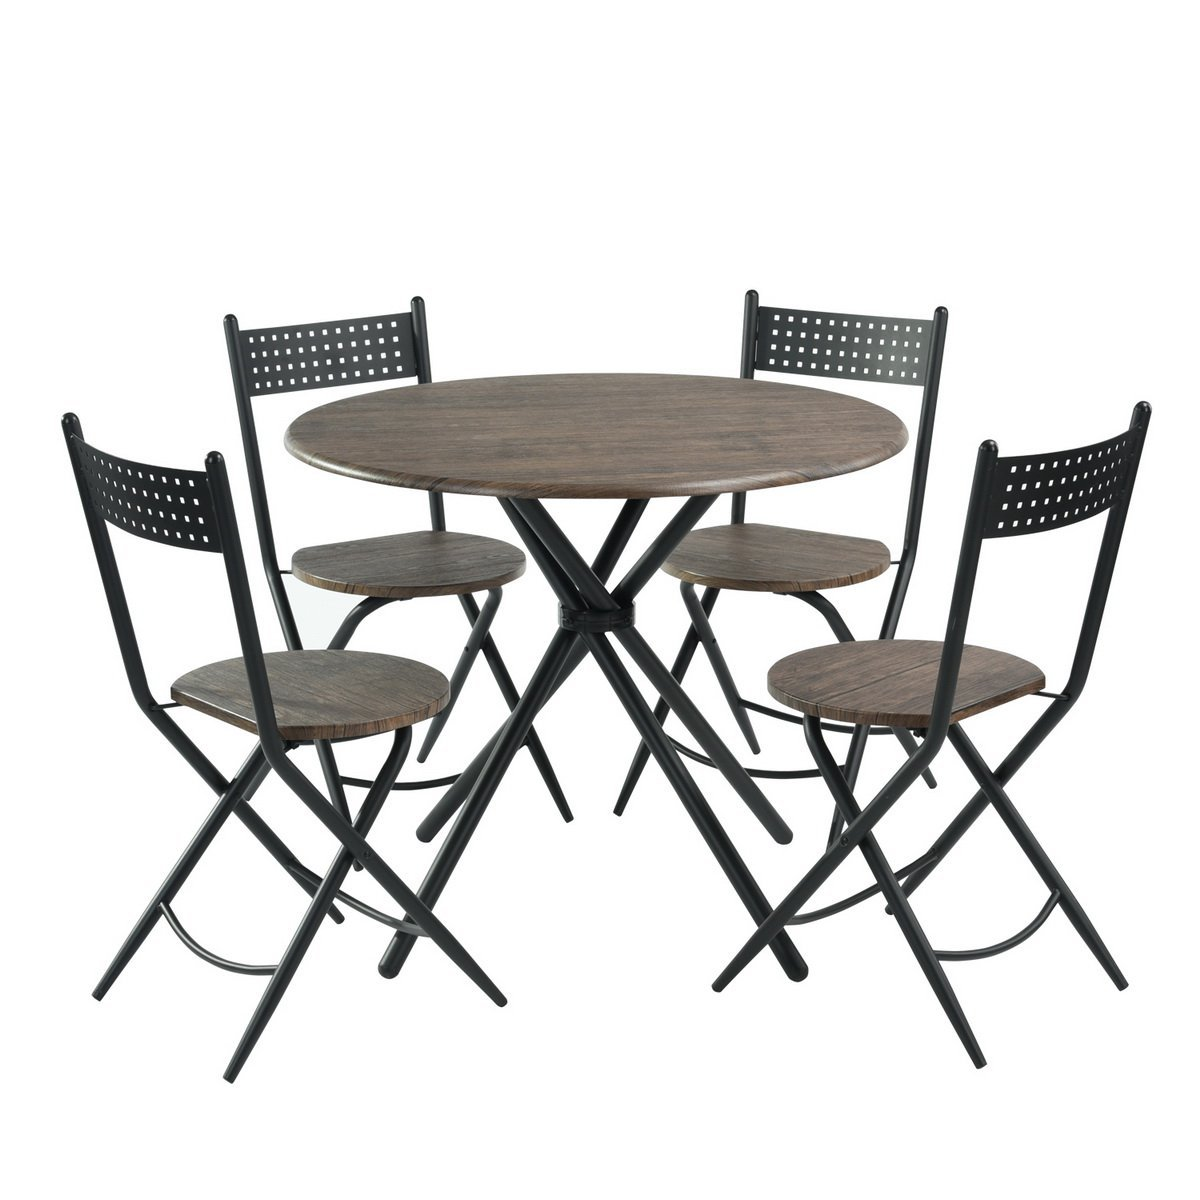 5 pcs Kitchen Dining Table, Round Coffee Table, Dining Furniture Wood and Metal, Home Kitchen Furniture, Dining table and folding chairs set